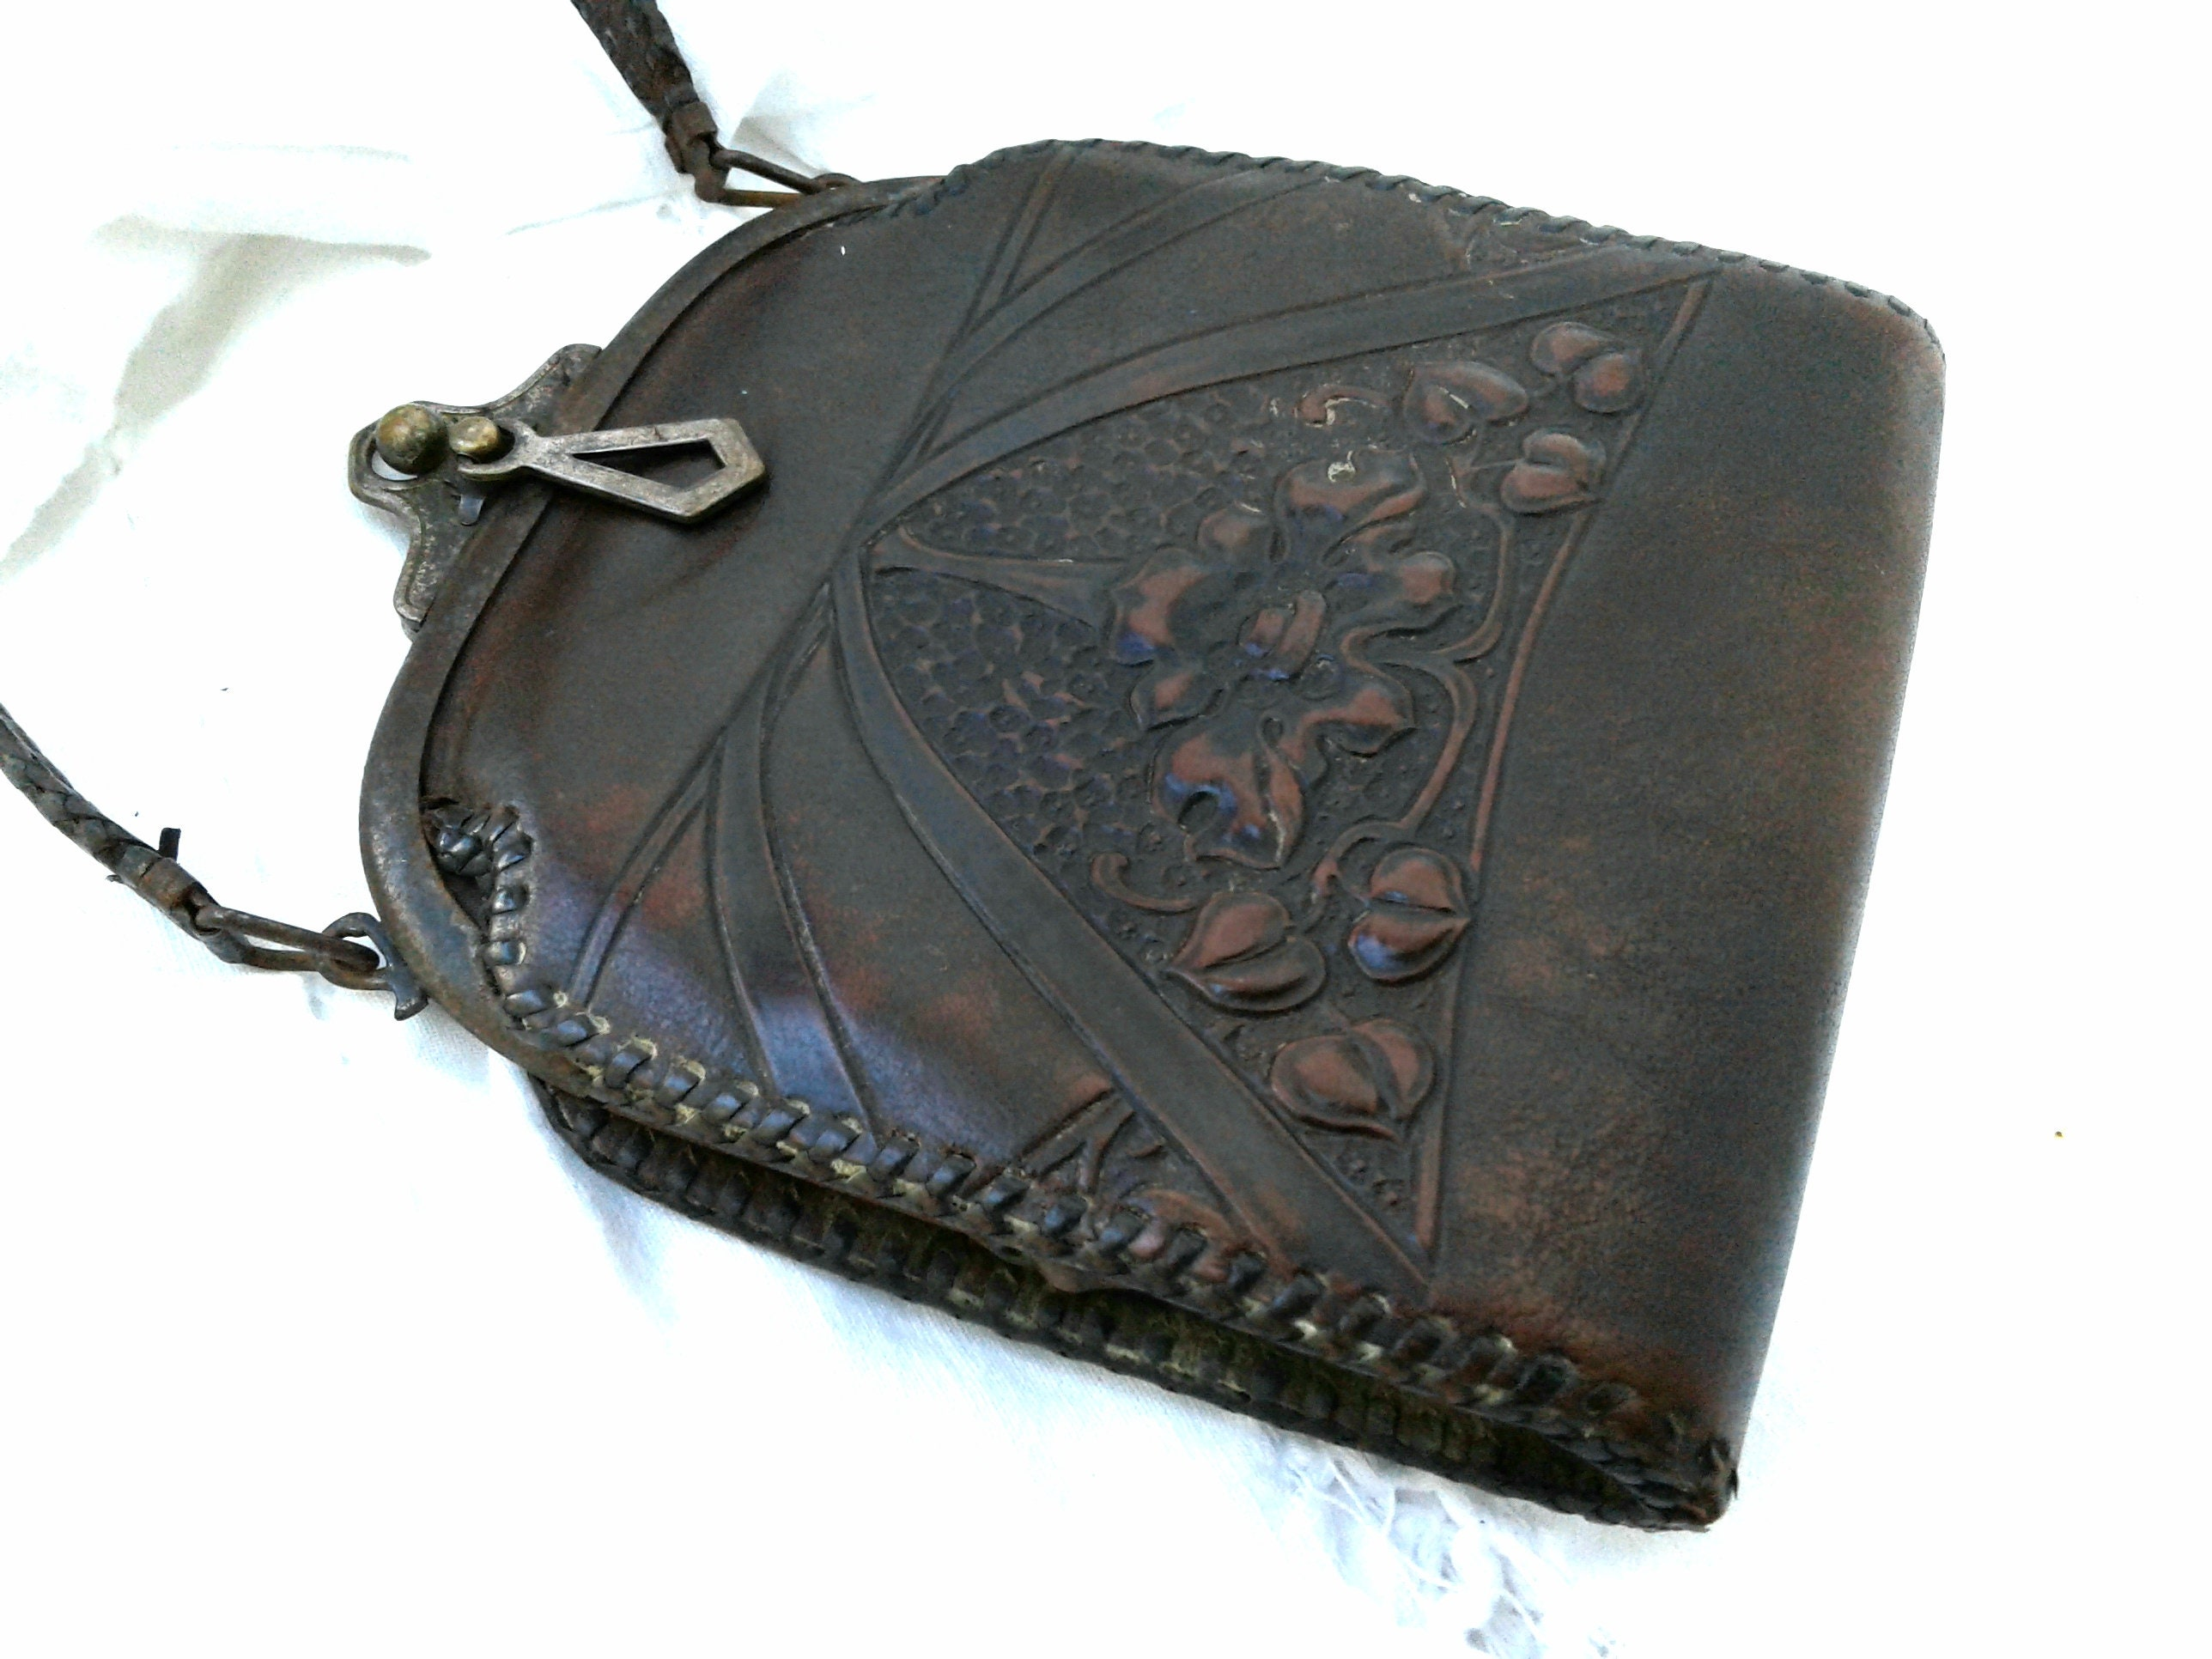 Antique Leather Purse Art Nouveau Early 1900s era Tooled   Etsy 133874e6d1